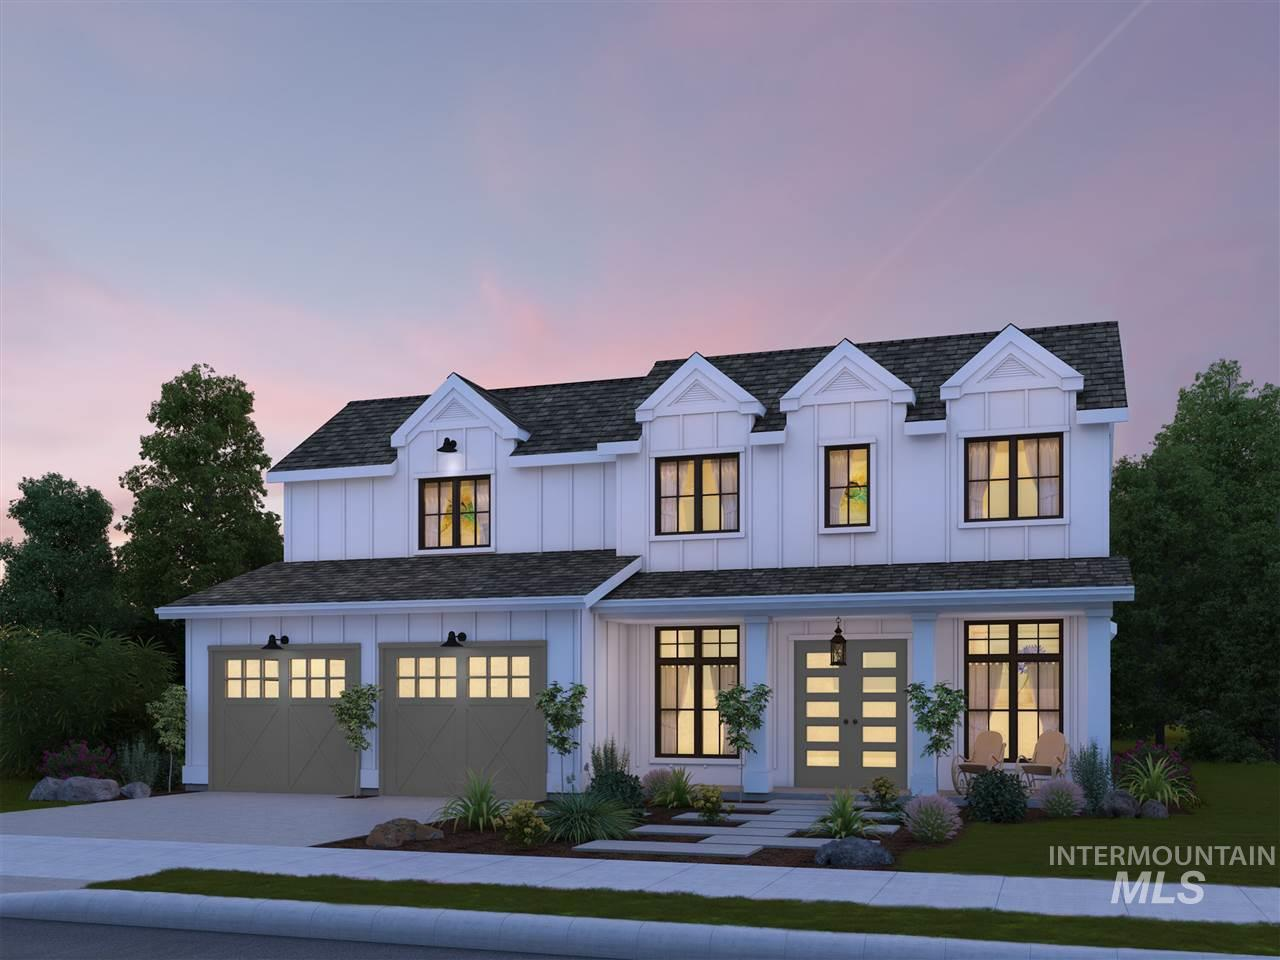 """Pre-Sold. """"The Colston"""" presented by Maddyn Homes featuring modern farm style, vaulted family room and beautiful custom finishes throughout. More lots available in Maddyn Village for this floor plan. **Visit our sales office Th-F from 12-5 or Sat-Sun 11-3.**"""